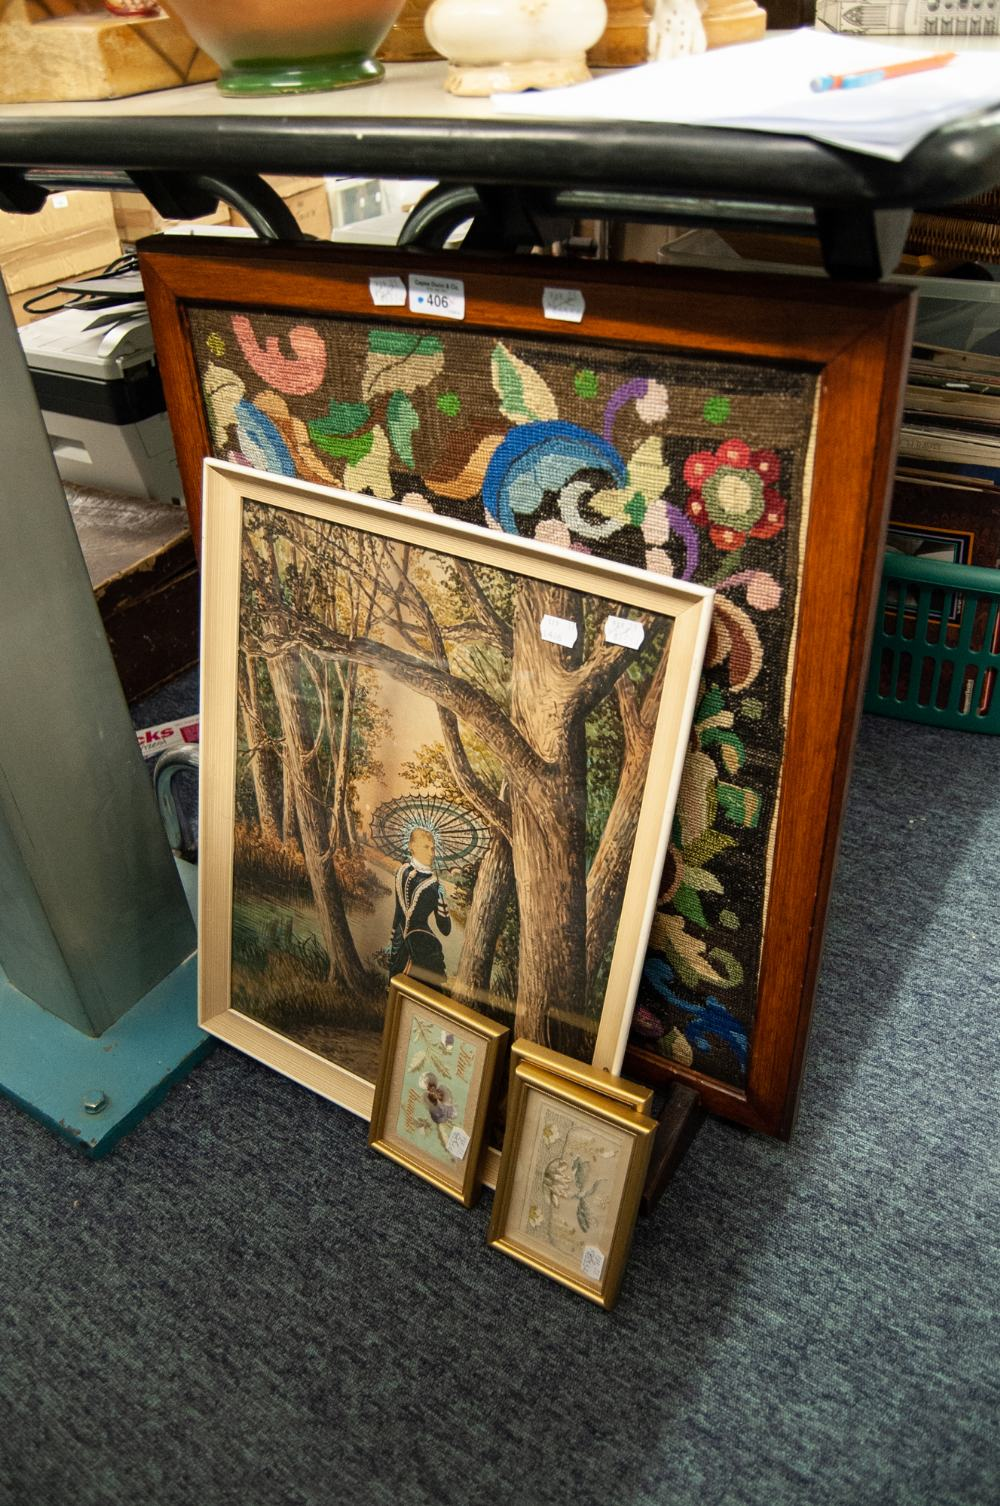 Lot 406 - OAK FRAMED FIRE SCREEN WITH FLORAL WOOLWORK CENTRE, together with a VICTORIAN WATERCOLOUR AND